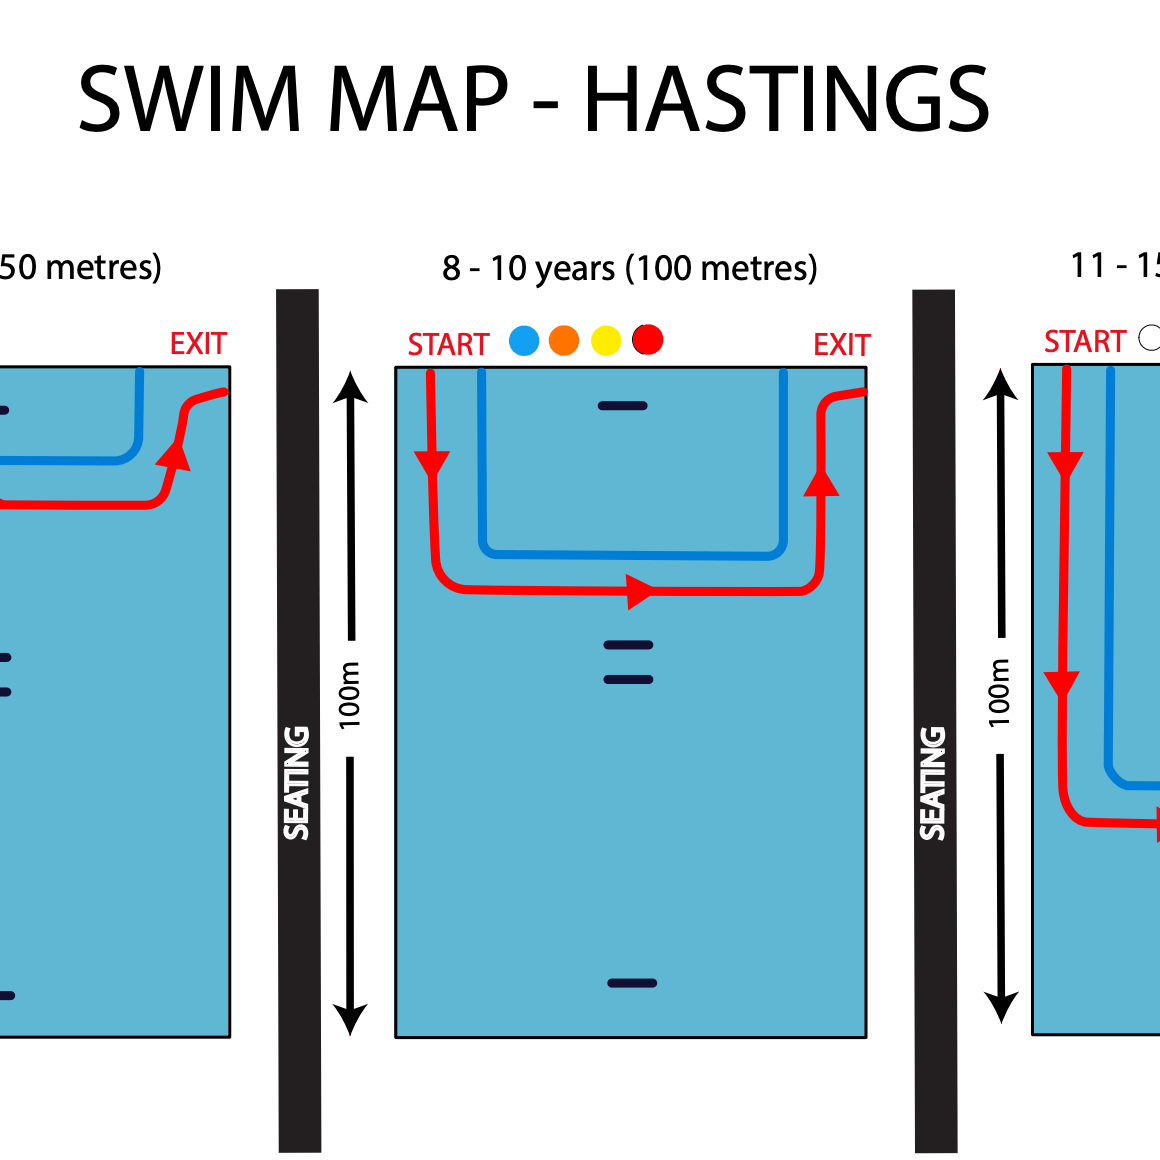 2021 Hastings Swim Map Image